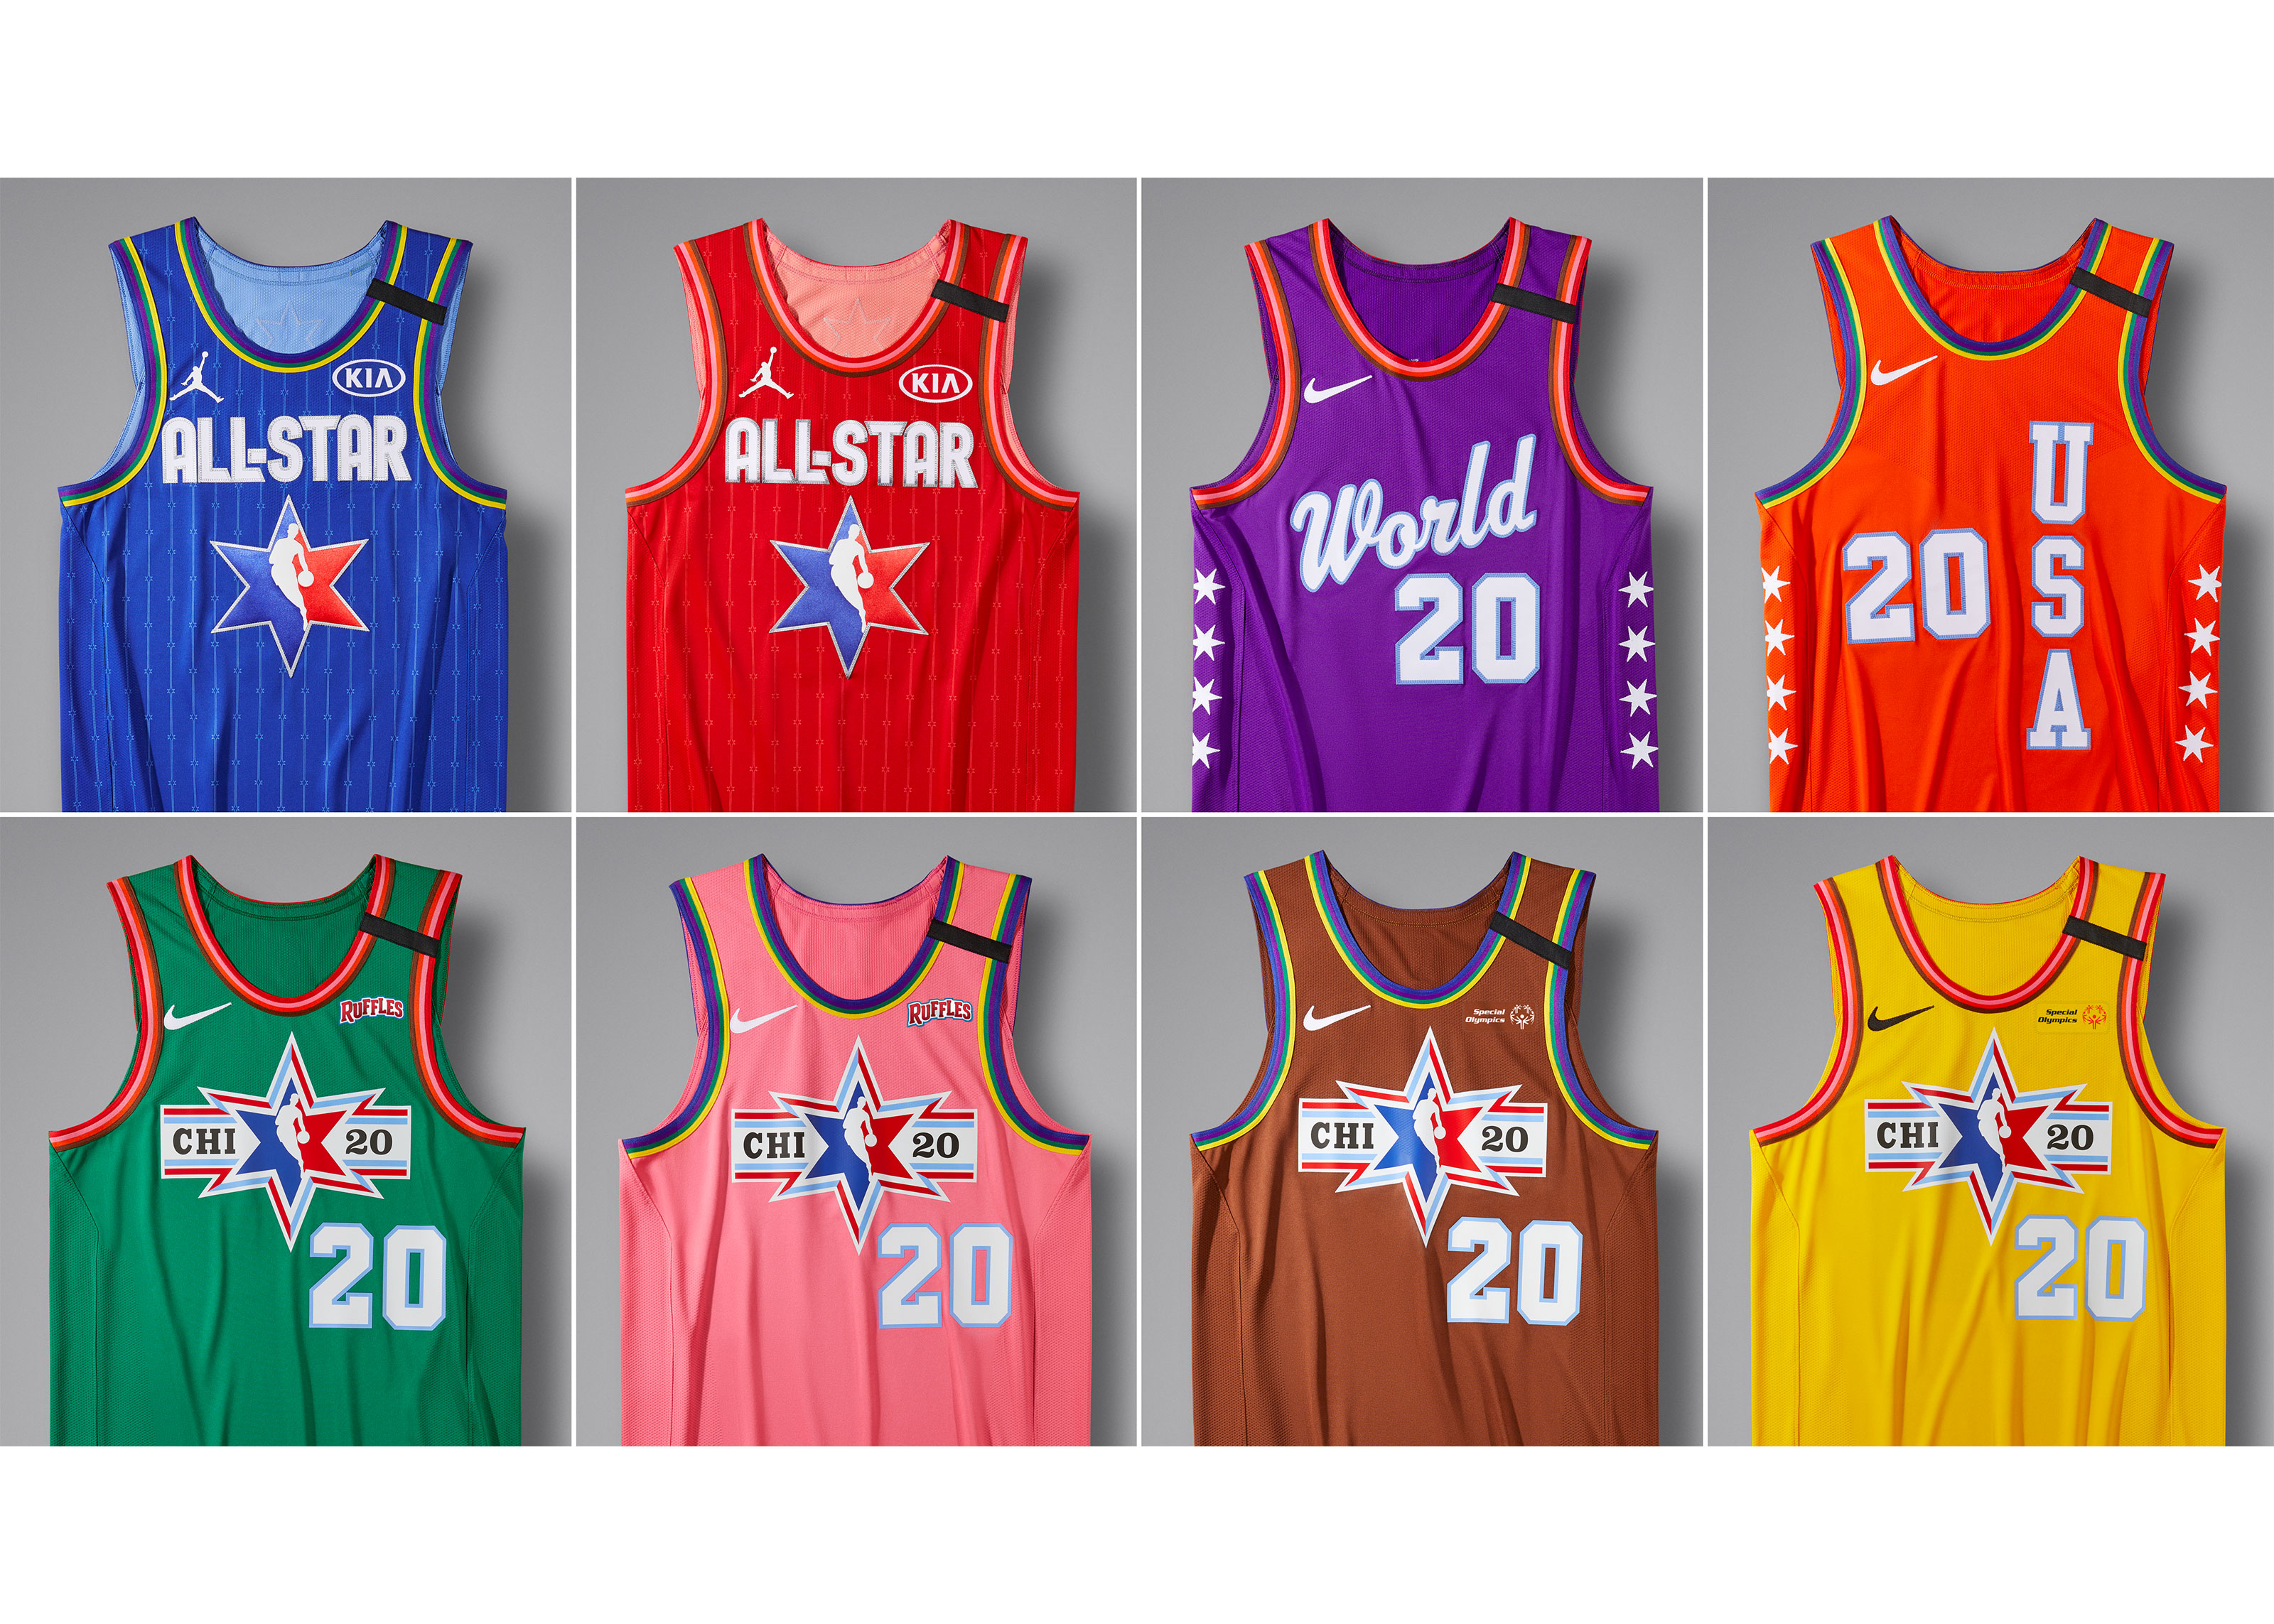 The NBA's All-Star Weekend uniforms are based on the colors of Chicago's L lines.